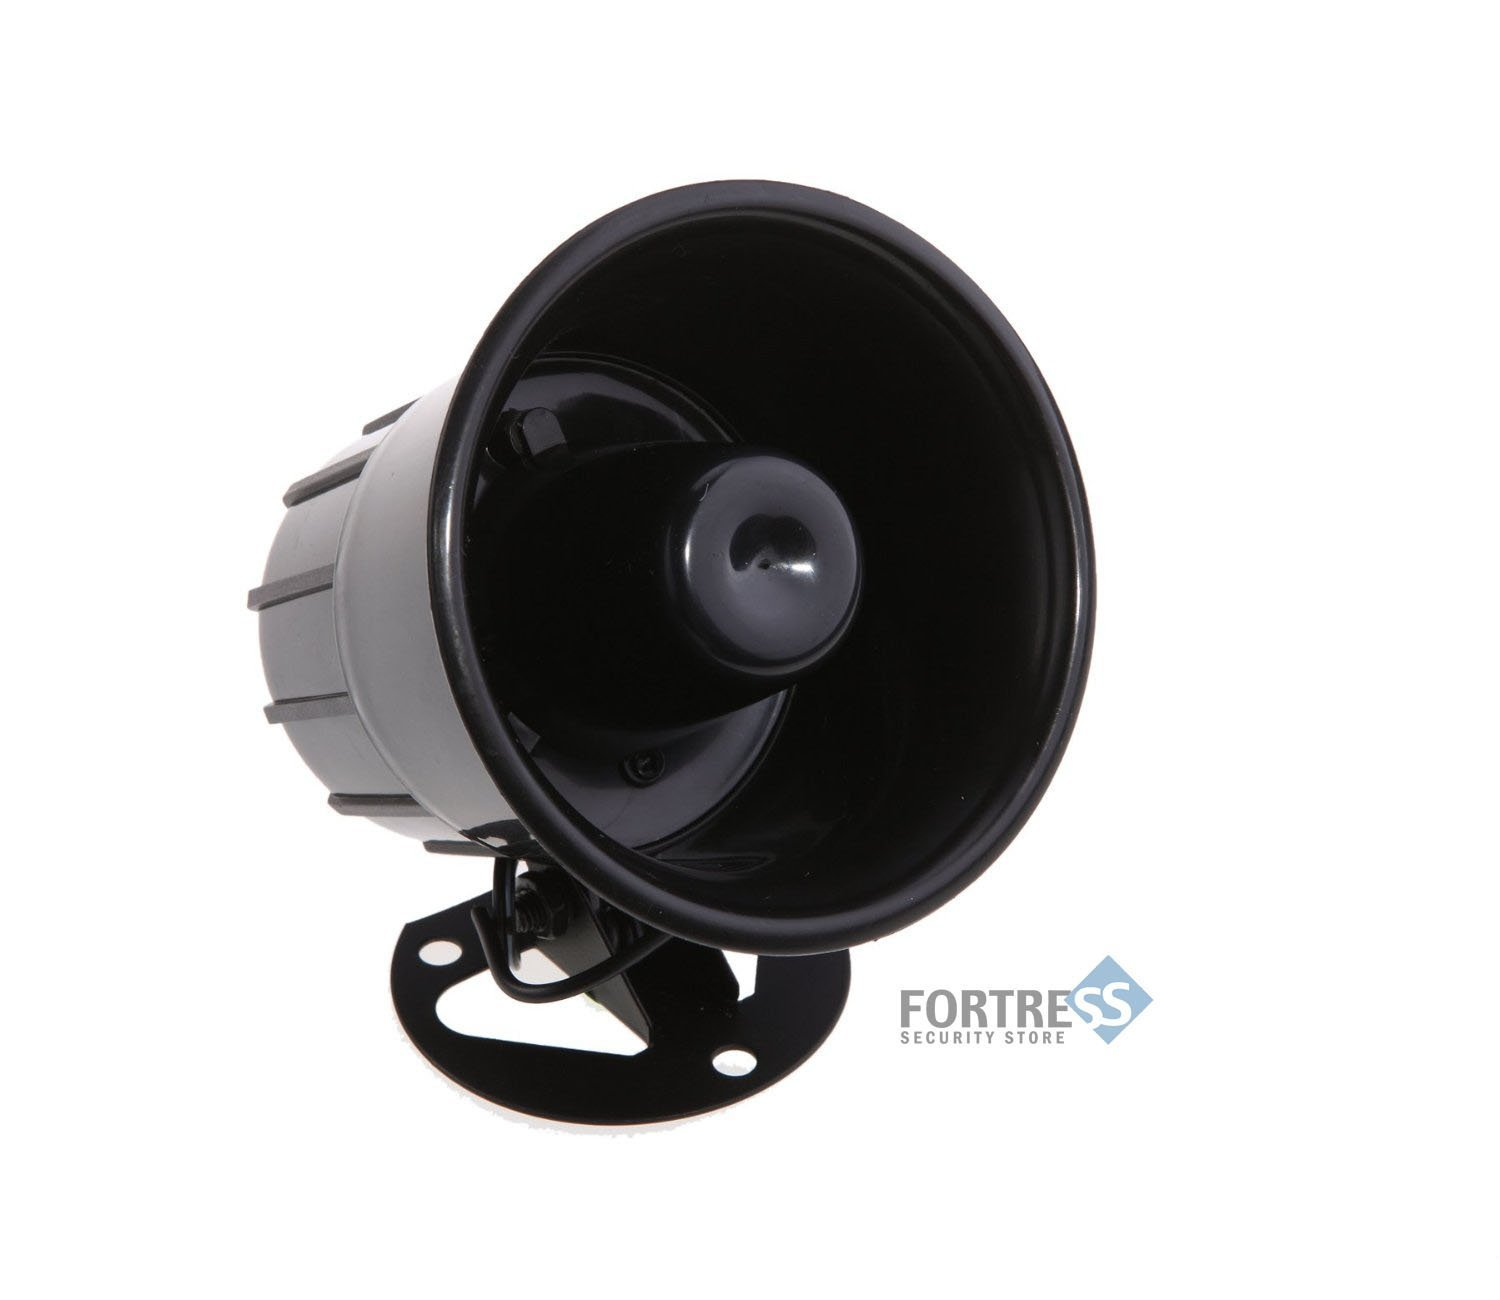 Fortress Security Store (TM) Loud Indoor/Outdoor Weatherproof Black Siren for DIY S02/GSM Home and Business Alarm Security Systems